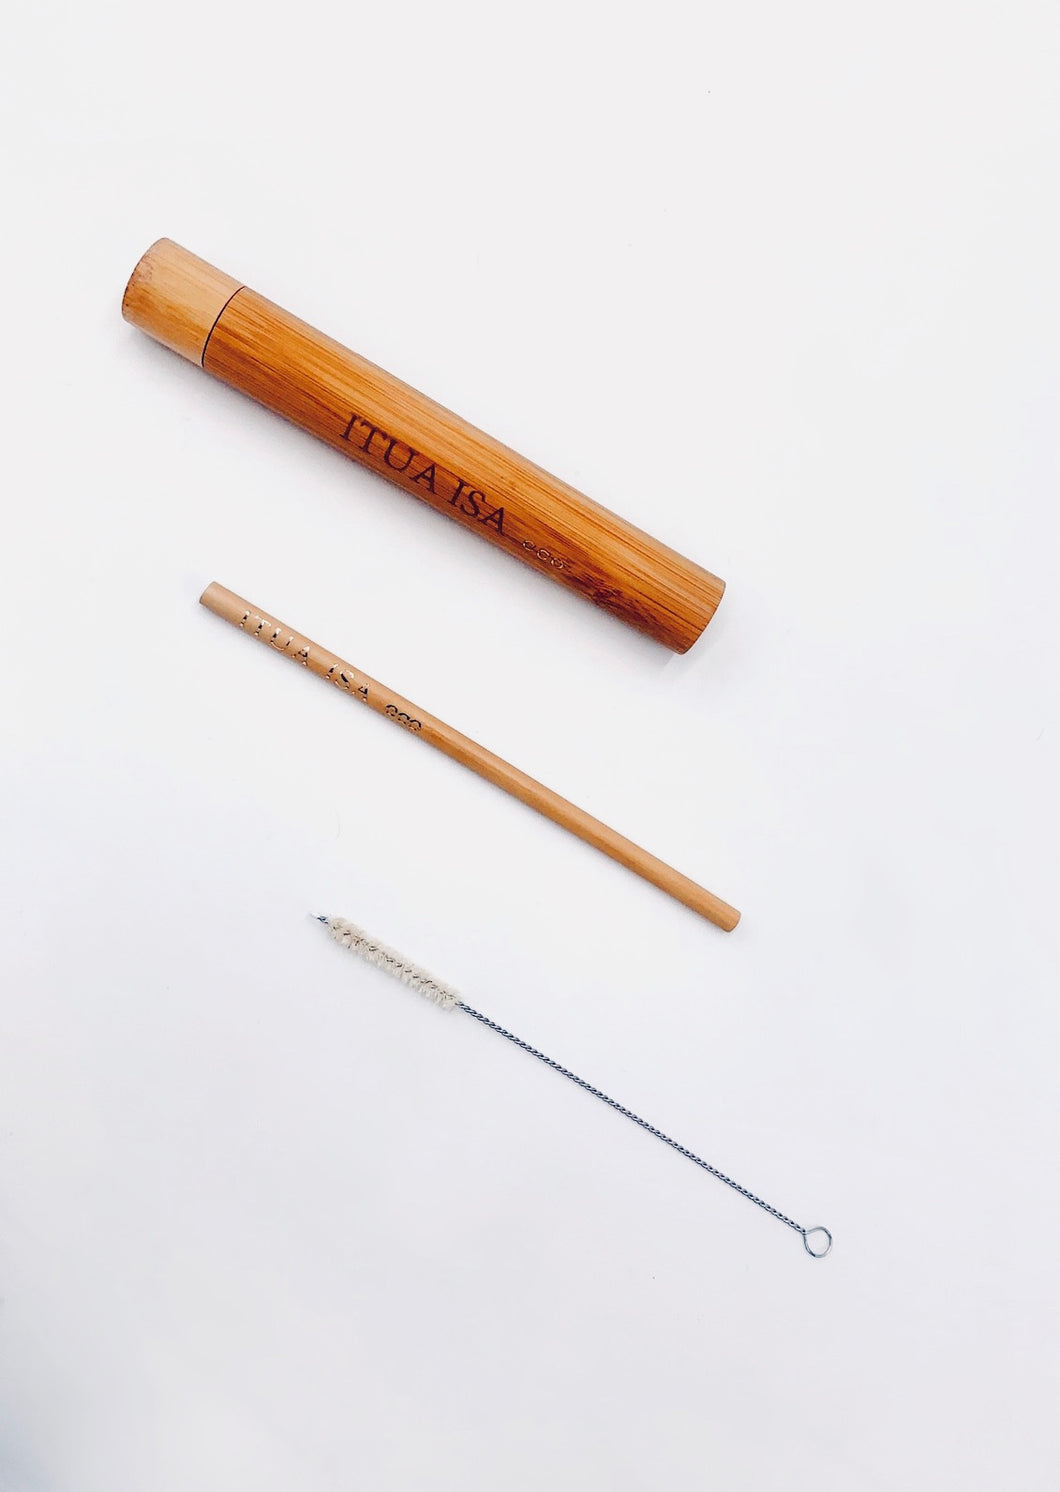 Itua Isa Eco Bamboo Drinking Straw Kit